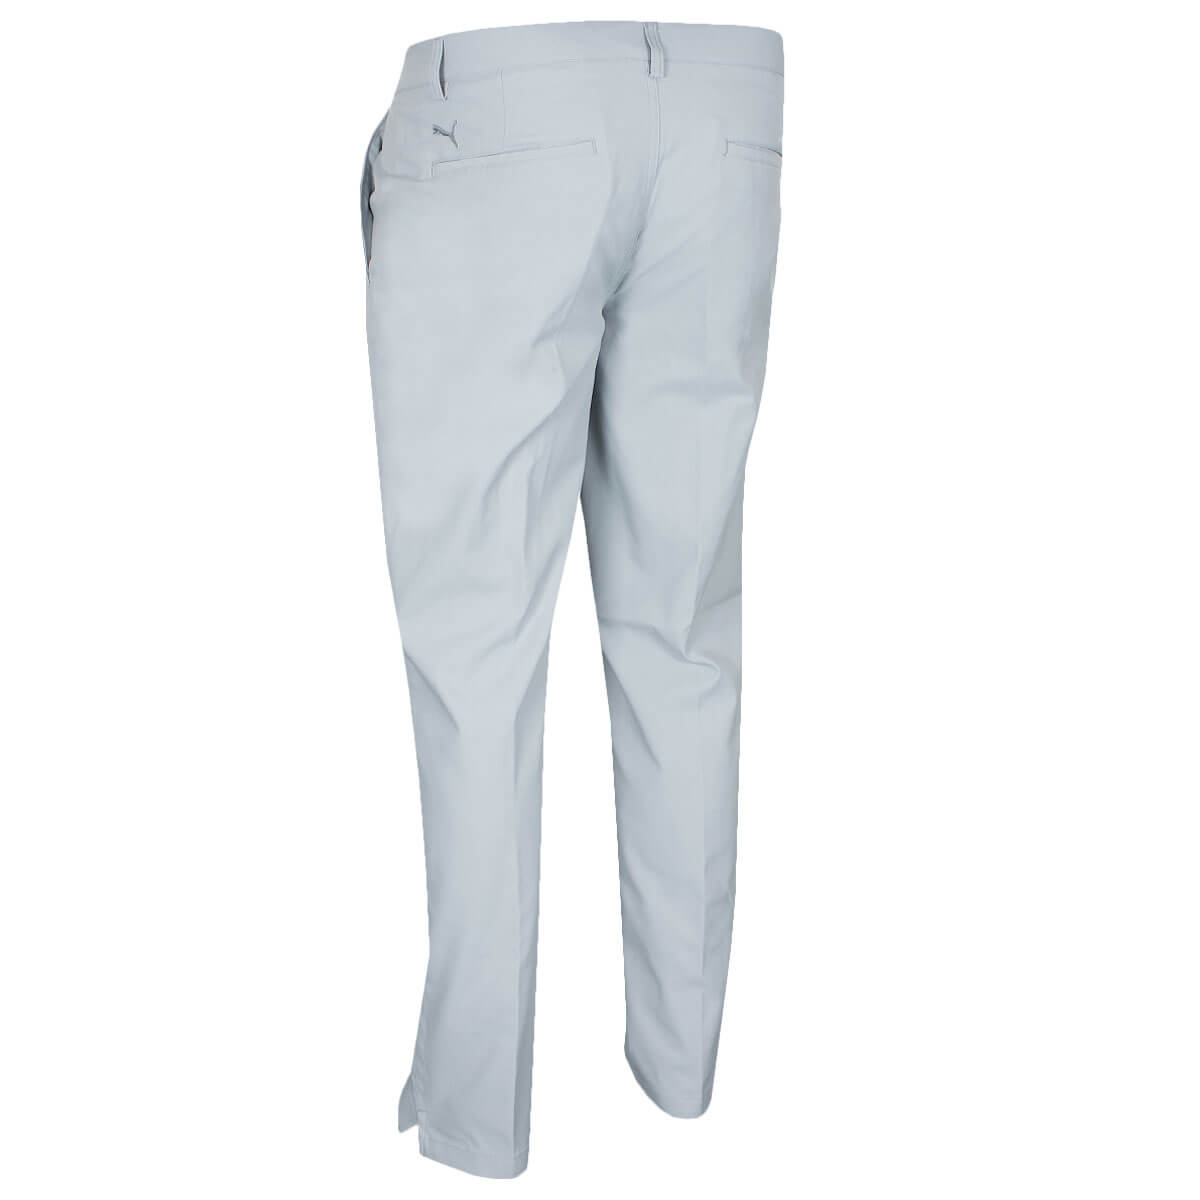 Puma-Golf-Mens-Stretch-Pounce-Golf-Stretch-Wicking-Trousers-45-OFF-RRP thumbnail 9